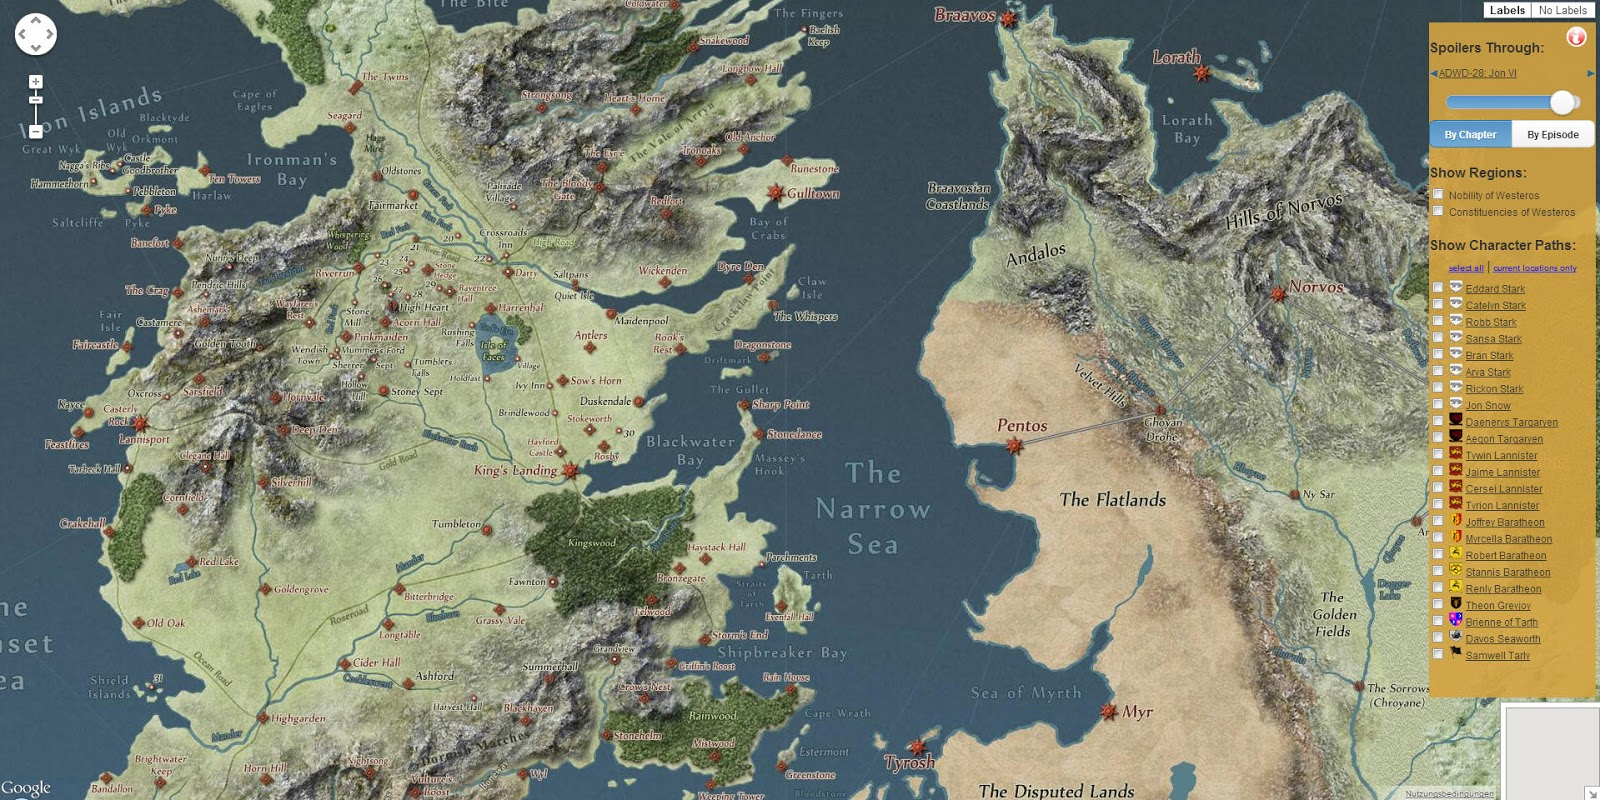 Westeros Karte Interaktiv.Landkartenblog A Song Of Ice And Fire Die Interaktive Landkarte